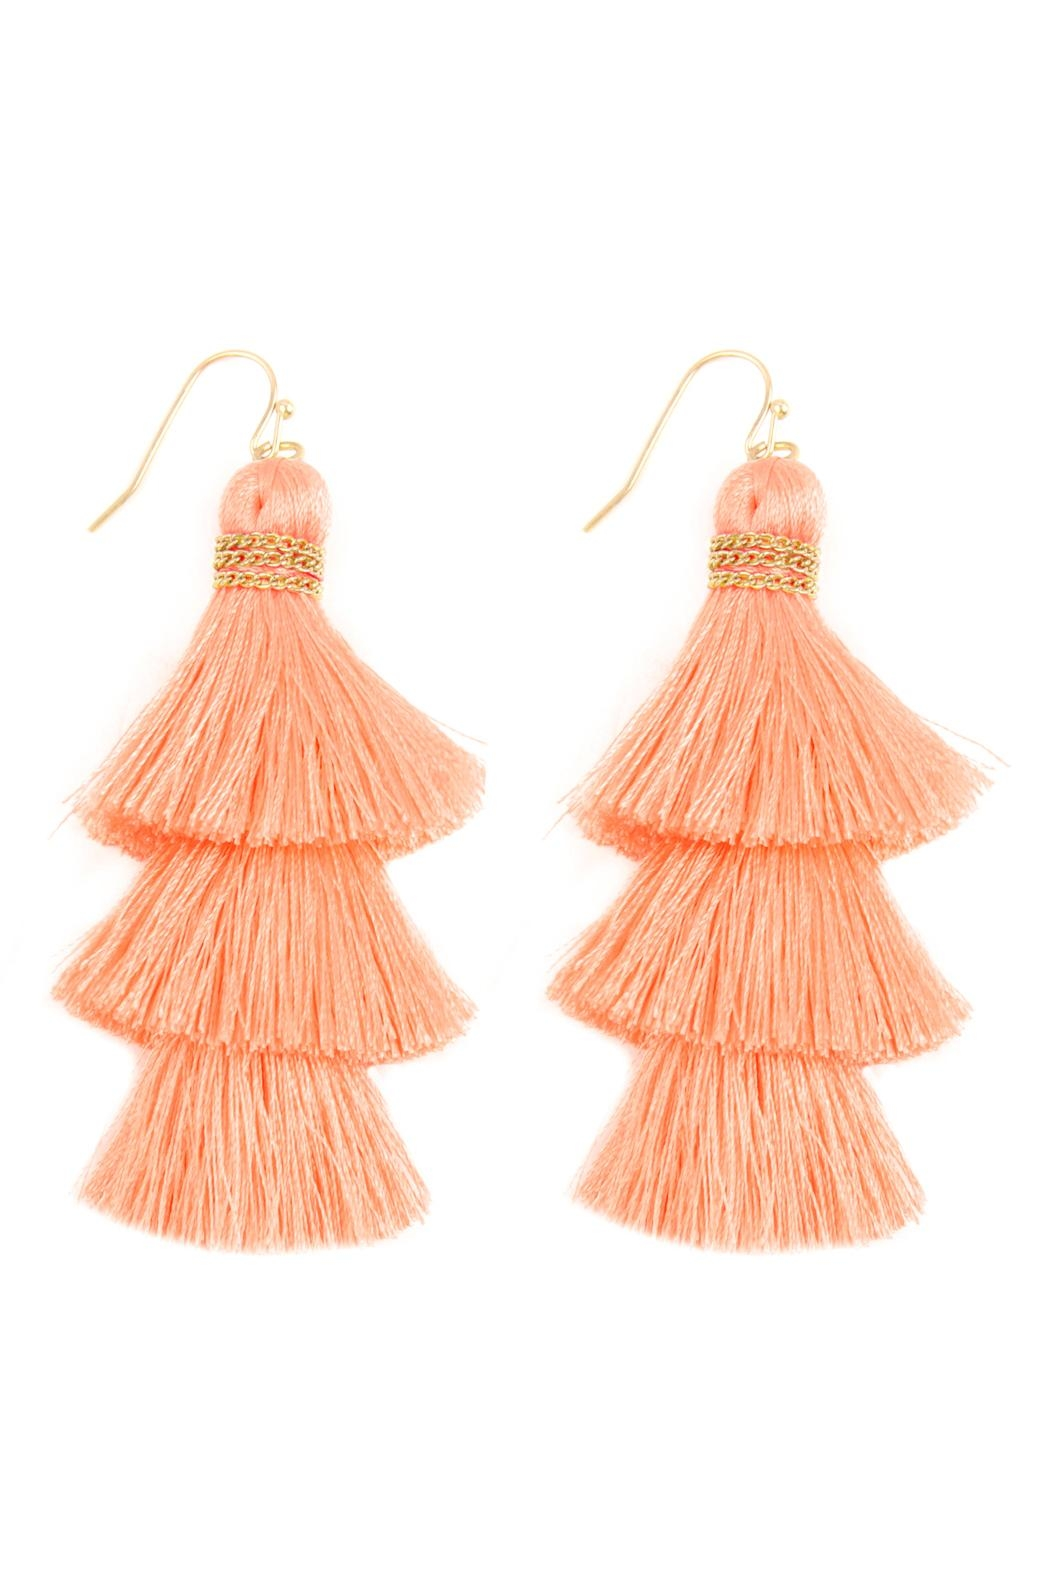 Riah Fashion Three Layered Thread-Tassel-Hook-Earrings - Front Cropped Image